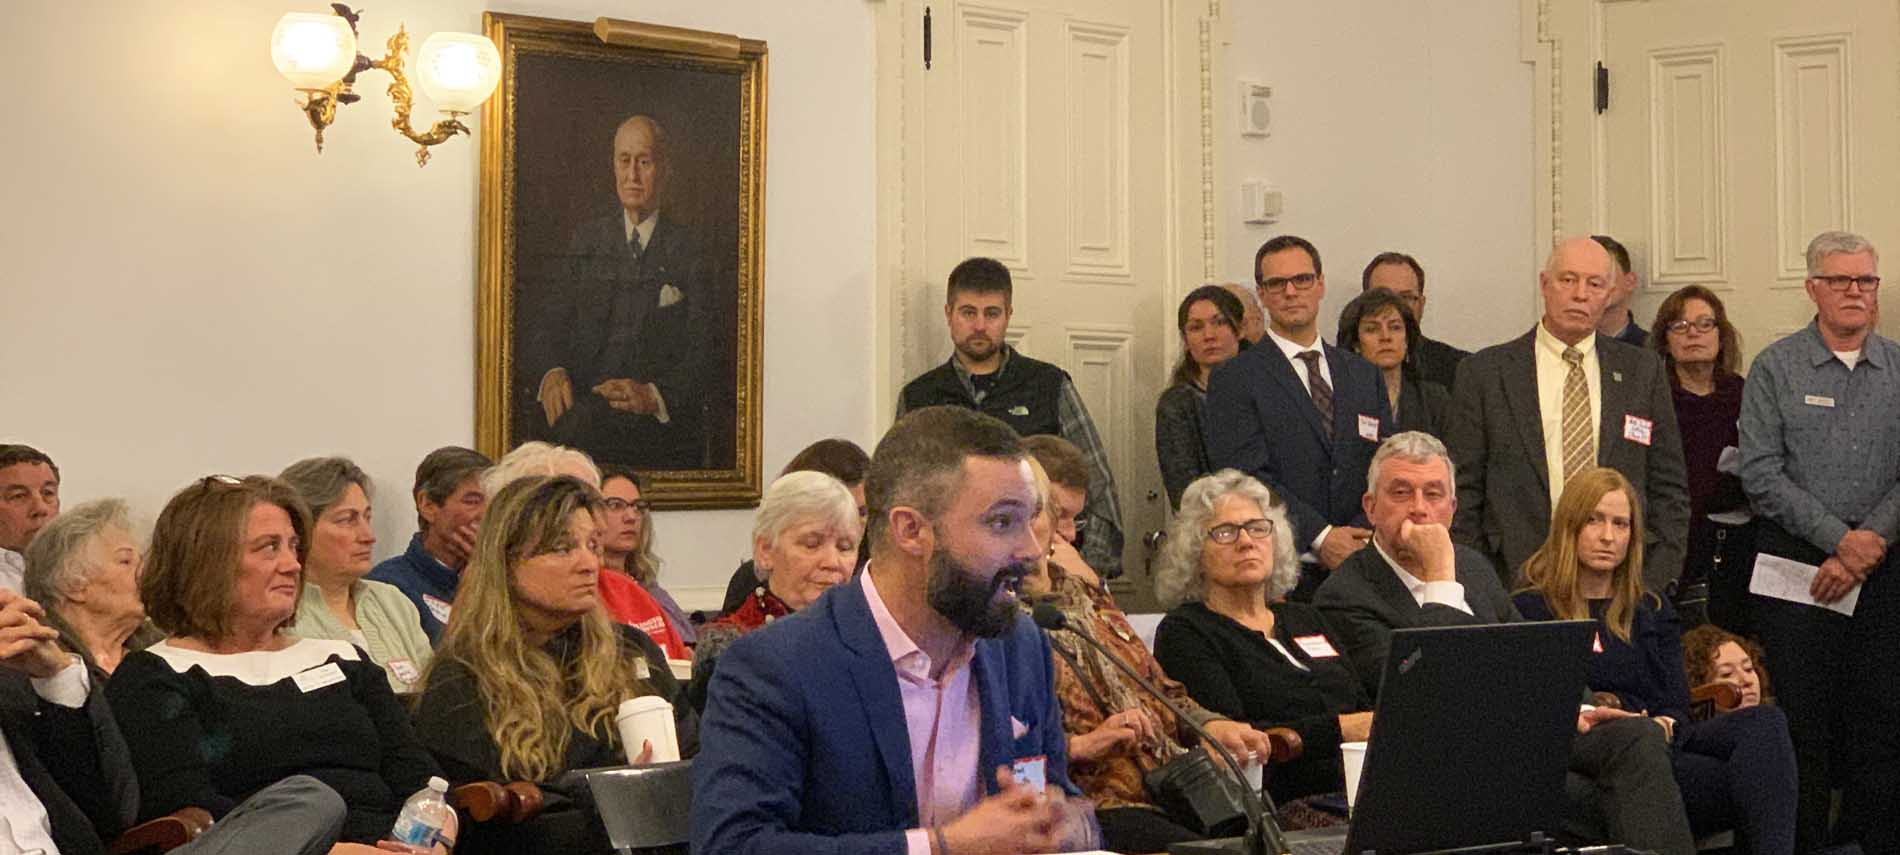 man testifying at vermont state house crowded room